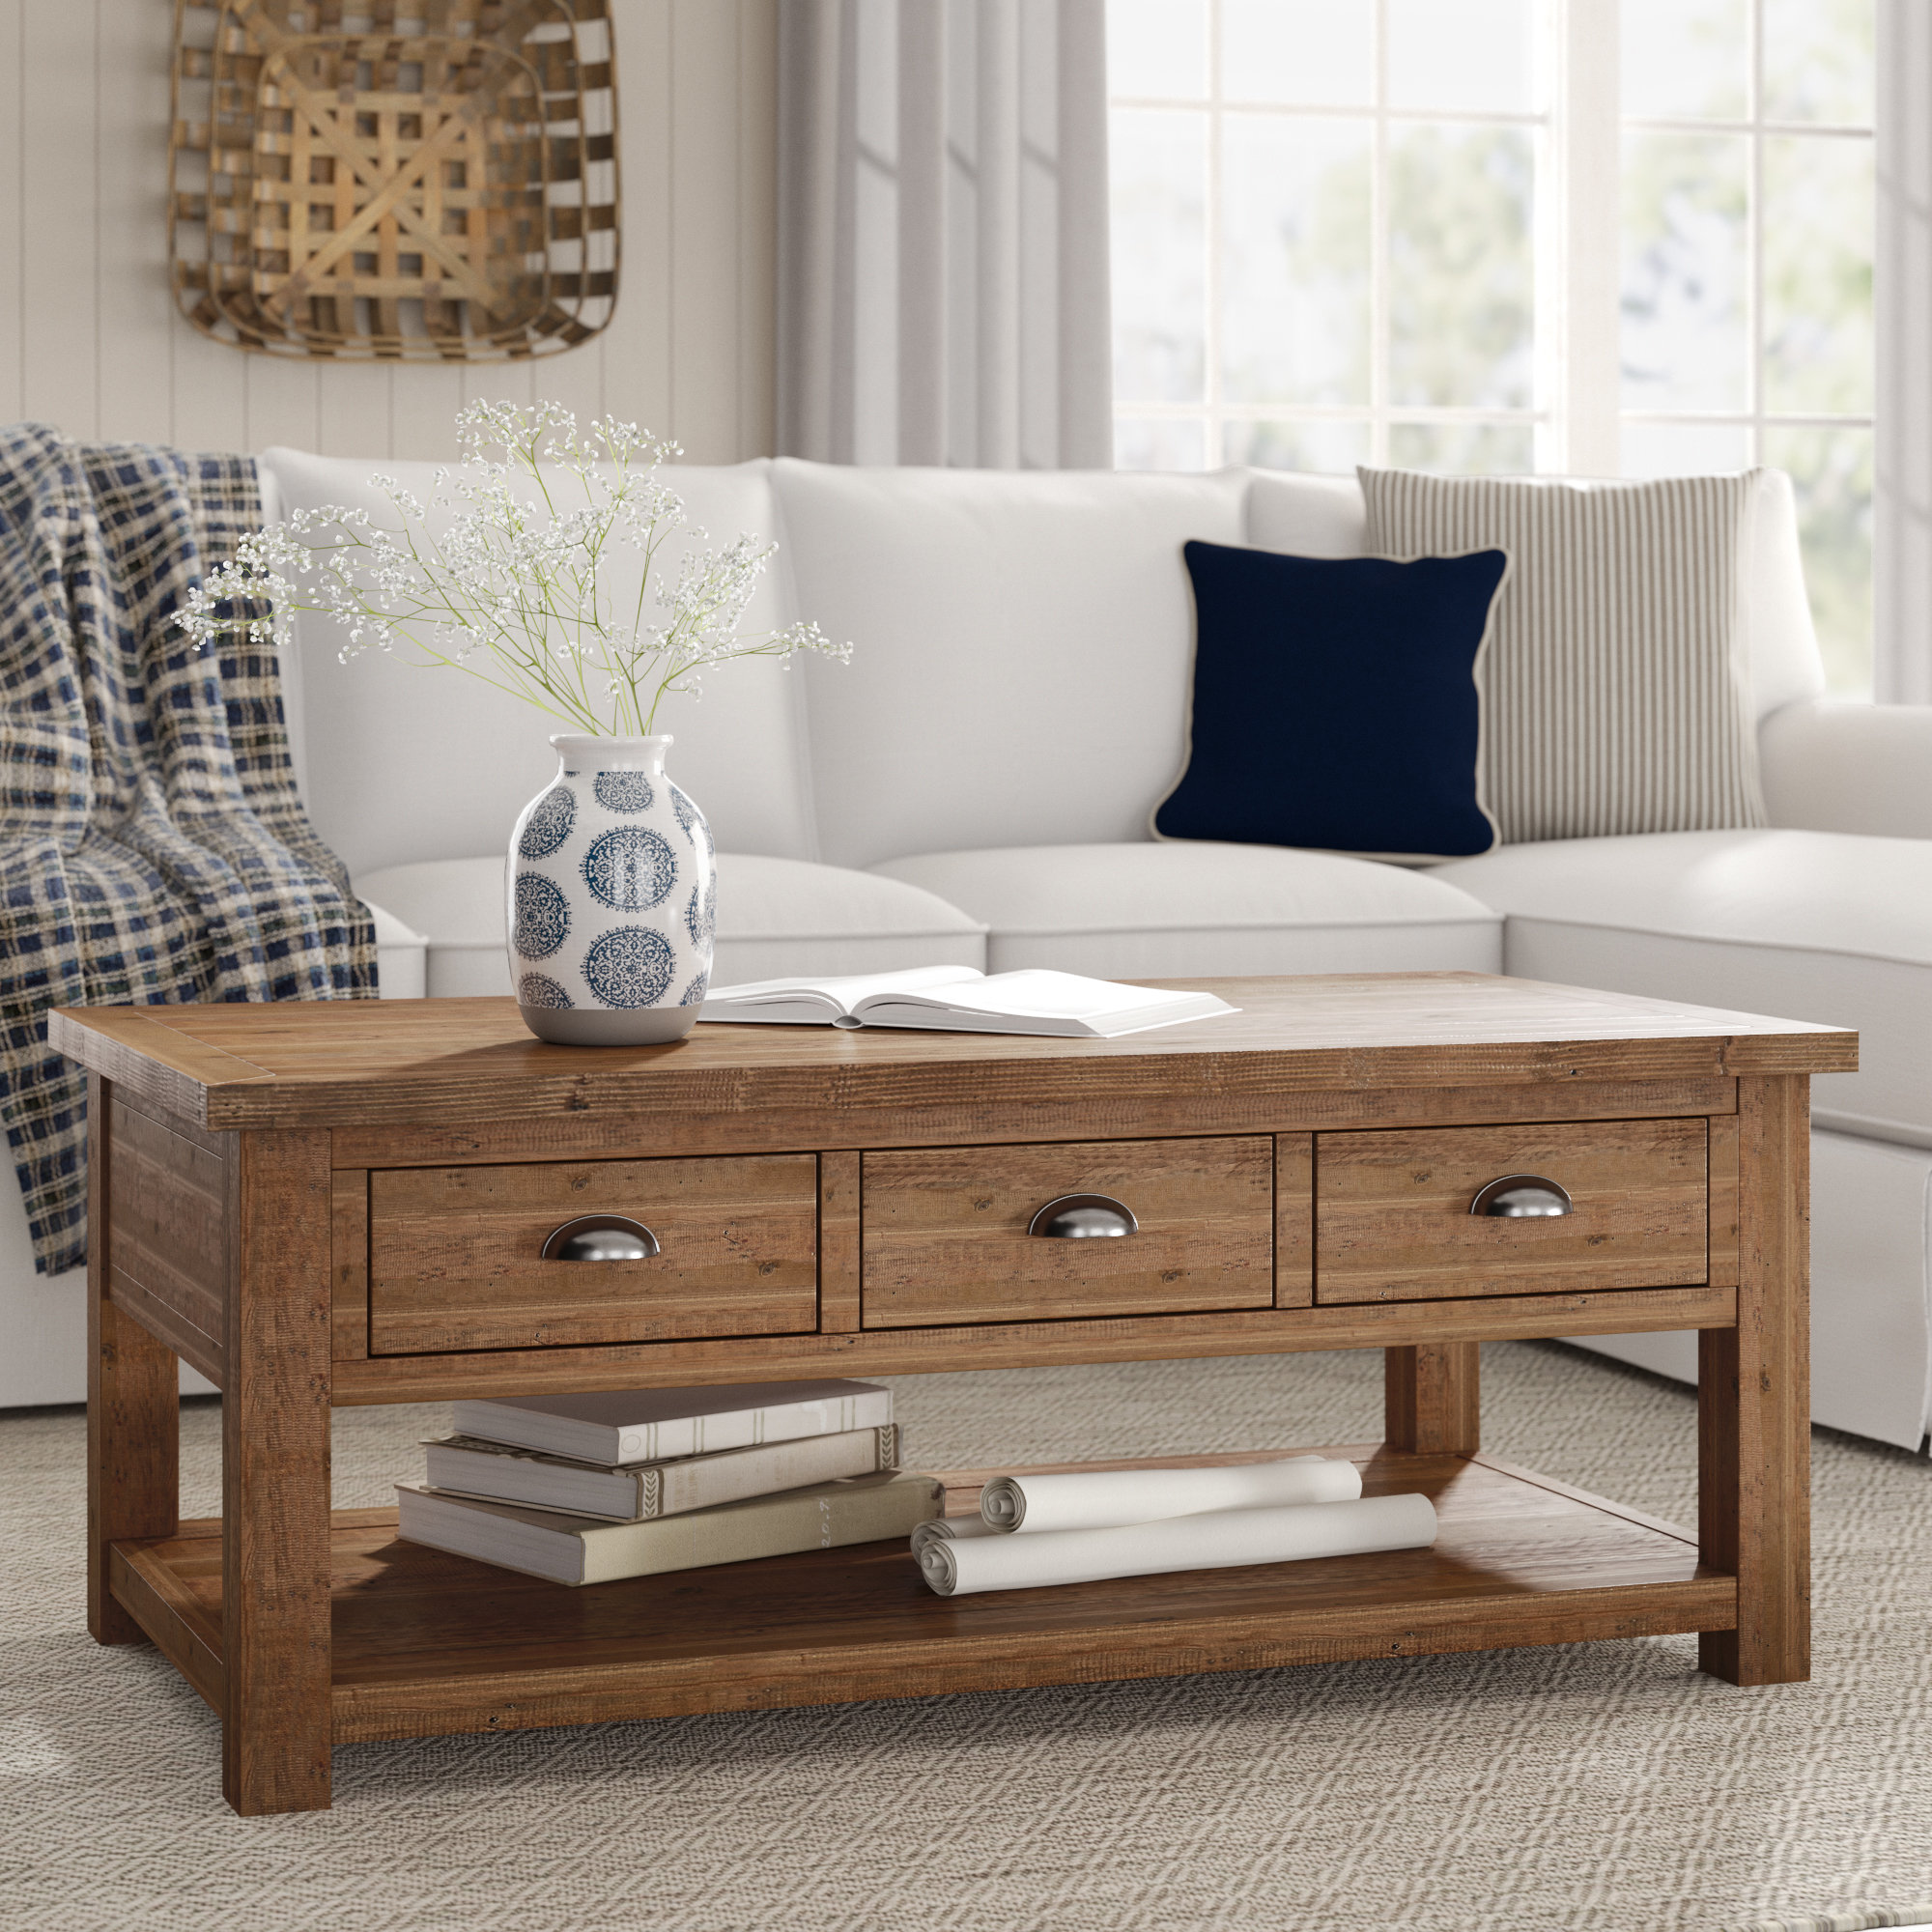 seneca coffee table with storage room essentials accent assembly instructions birch lane heritage reviews gold shelves power management dining set bench frame home decor